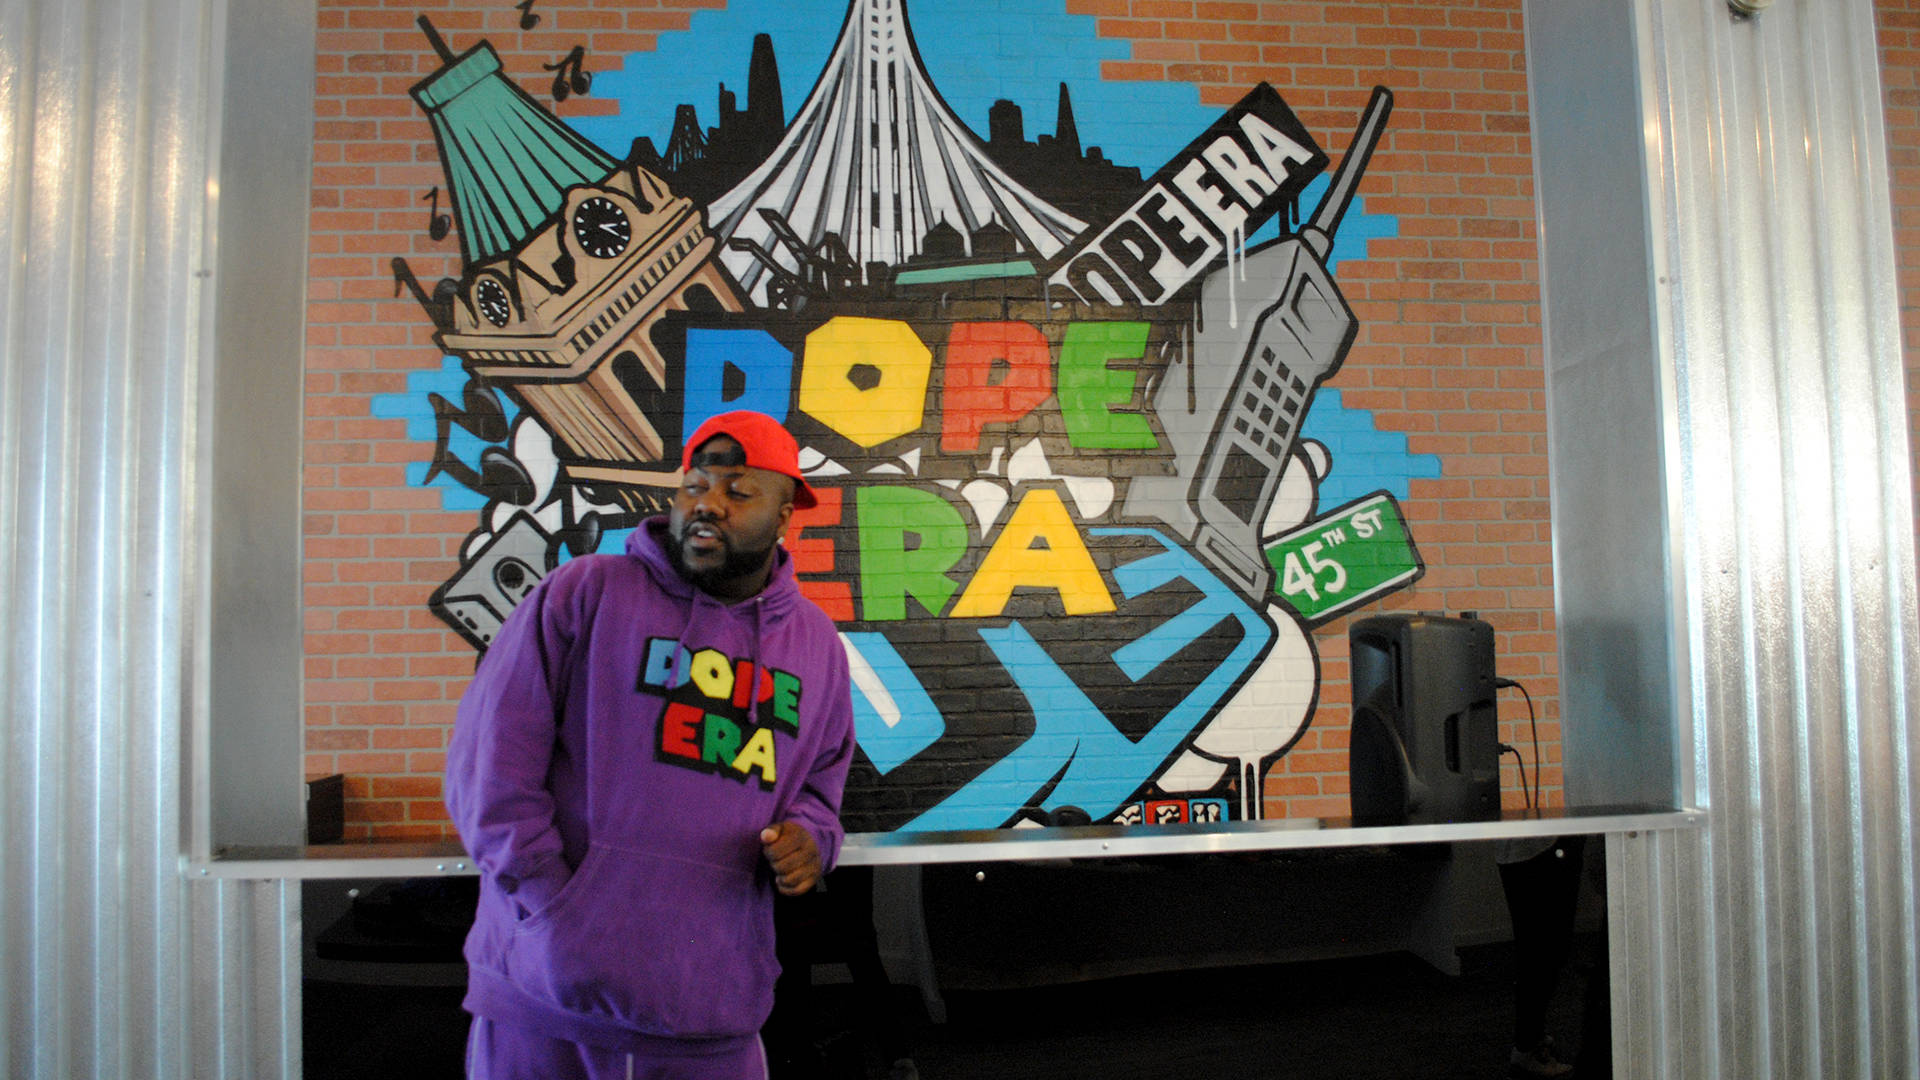 Mistah F.A.B. opened his new Dope Era store on 20th and Broadway in Downtown Oakland in March 2018. Nastia Voynovskaya